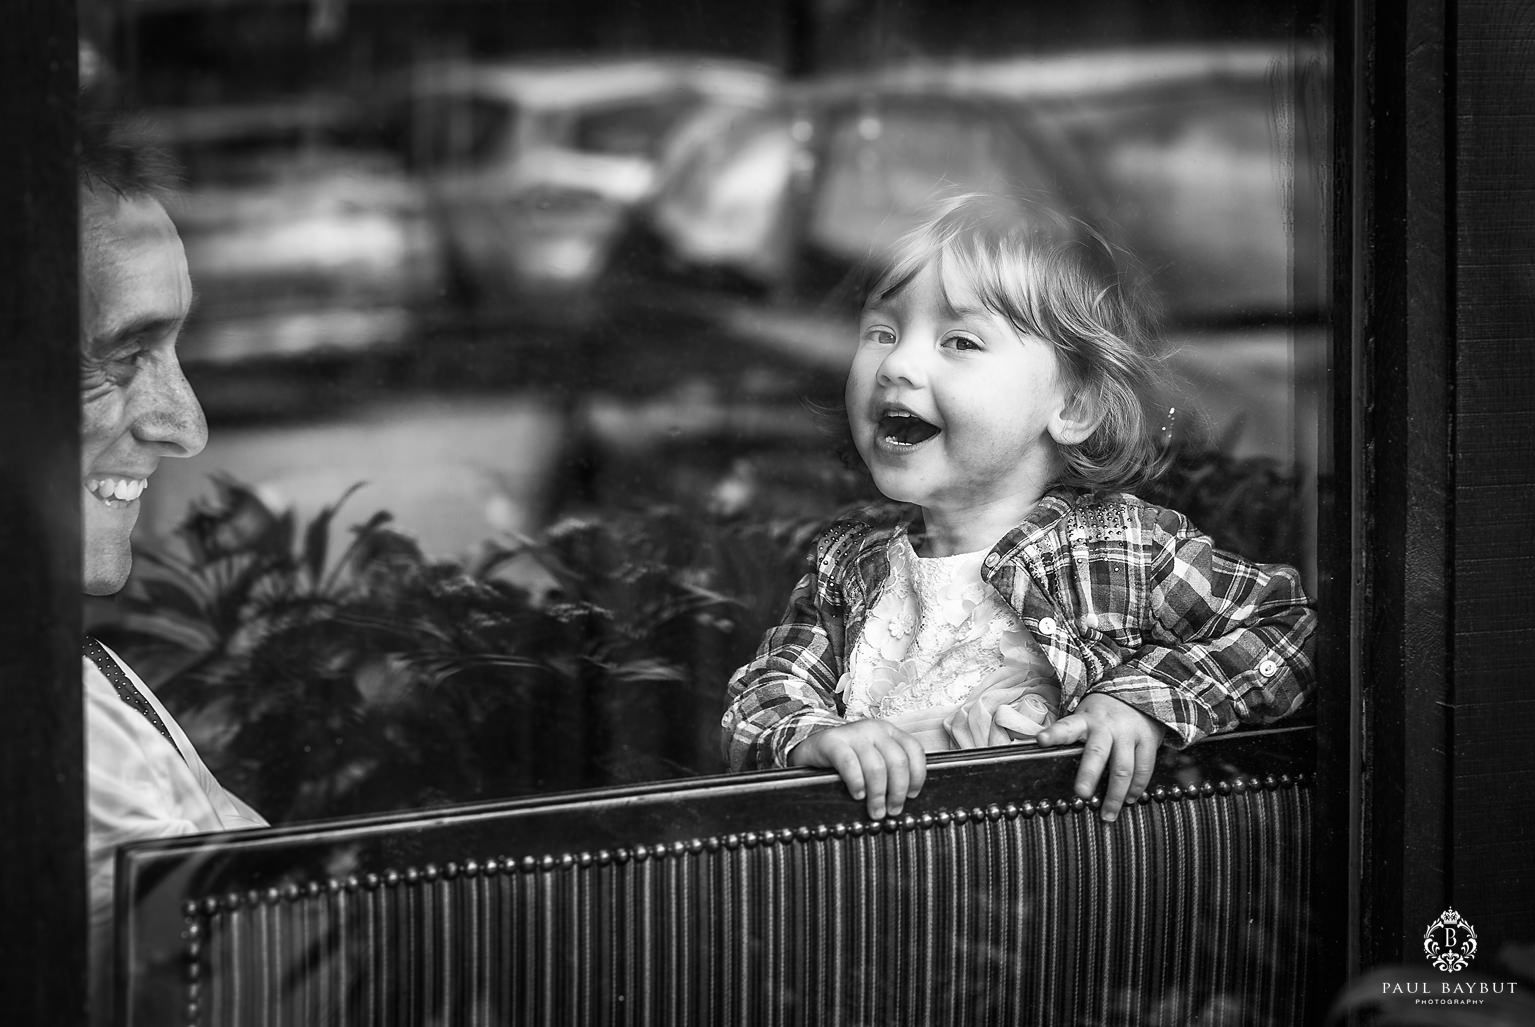 Little girl laughs heartily with her father behind a glass window